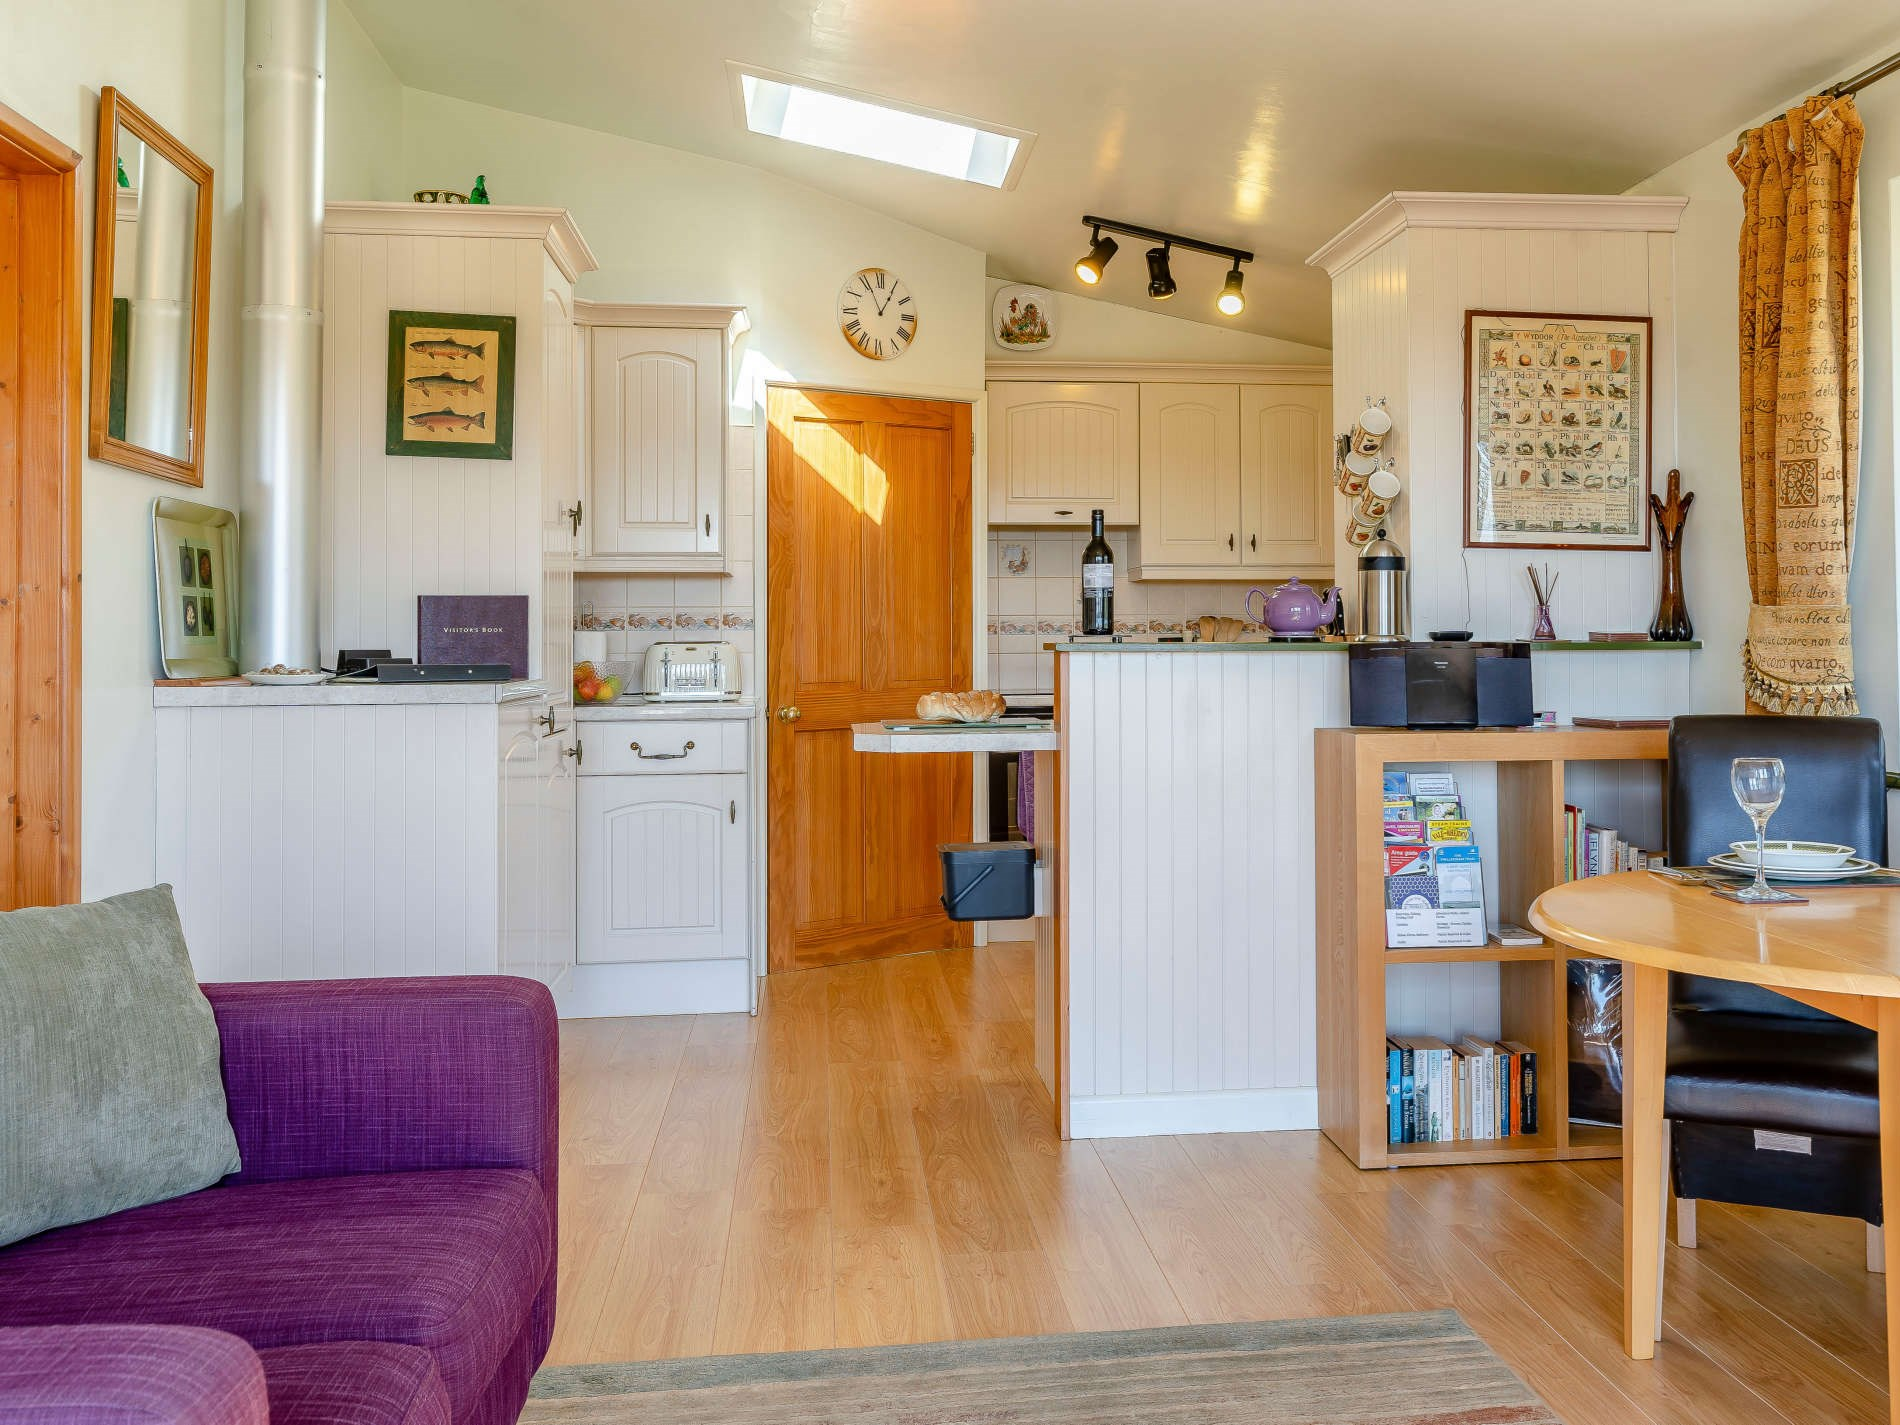 1 Bedroom Cottage in Lampeter, Mid Wales